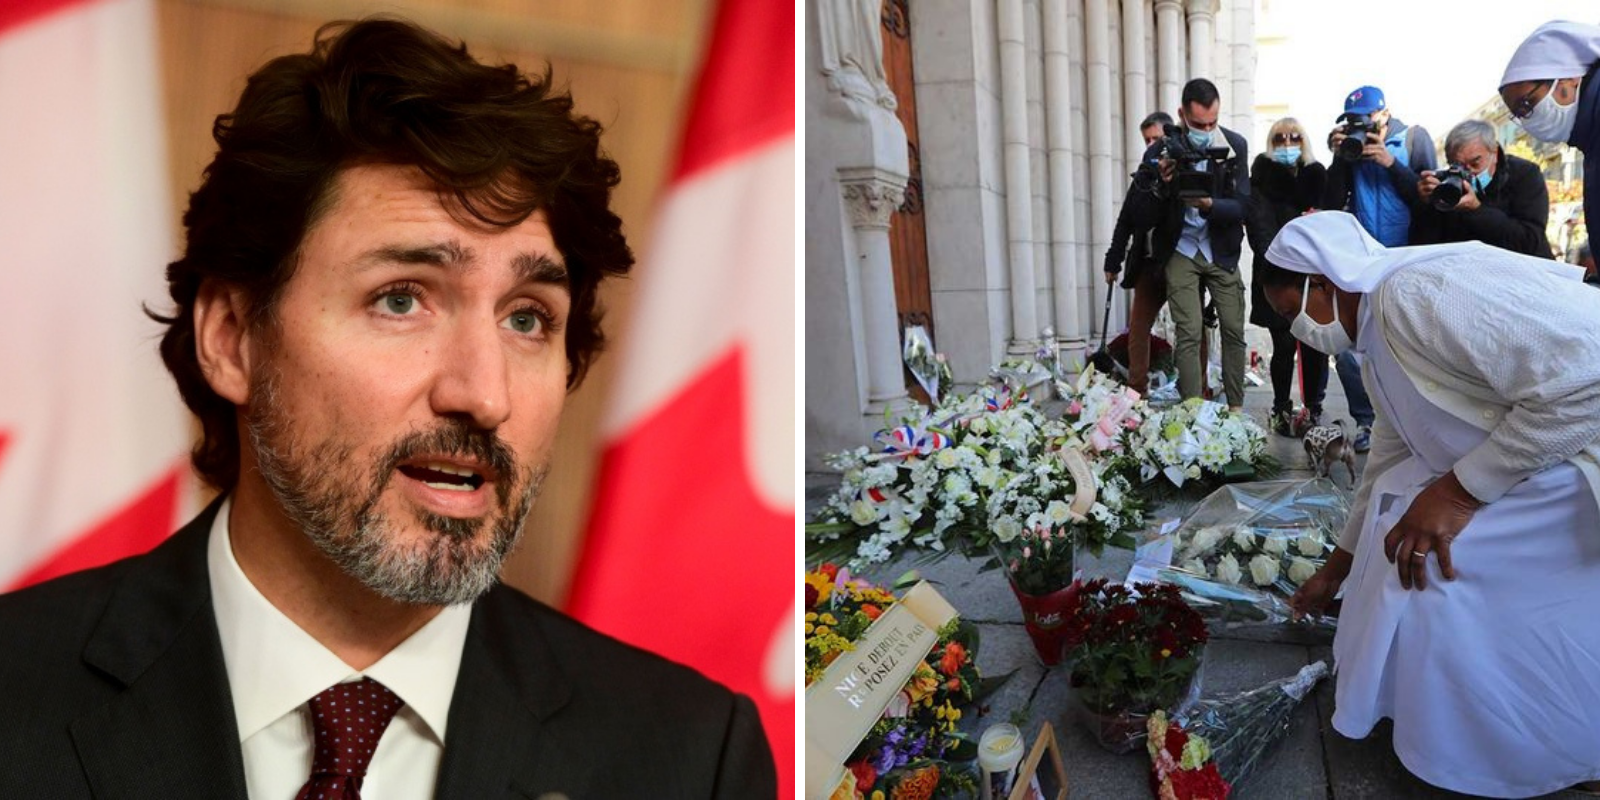 Trudeau says 'freedom of expression has limits' after French terror attacks